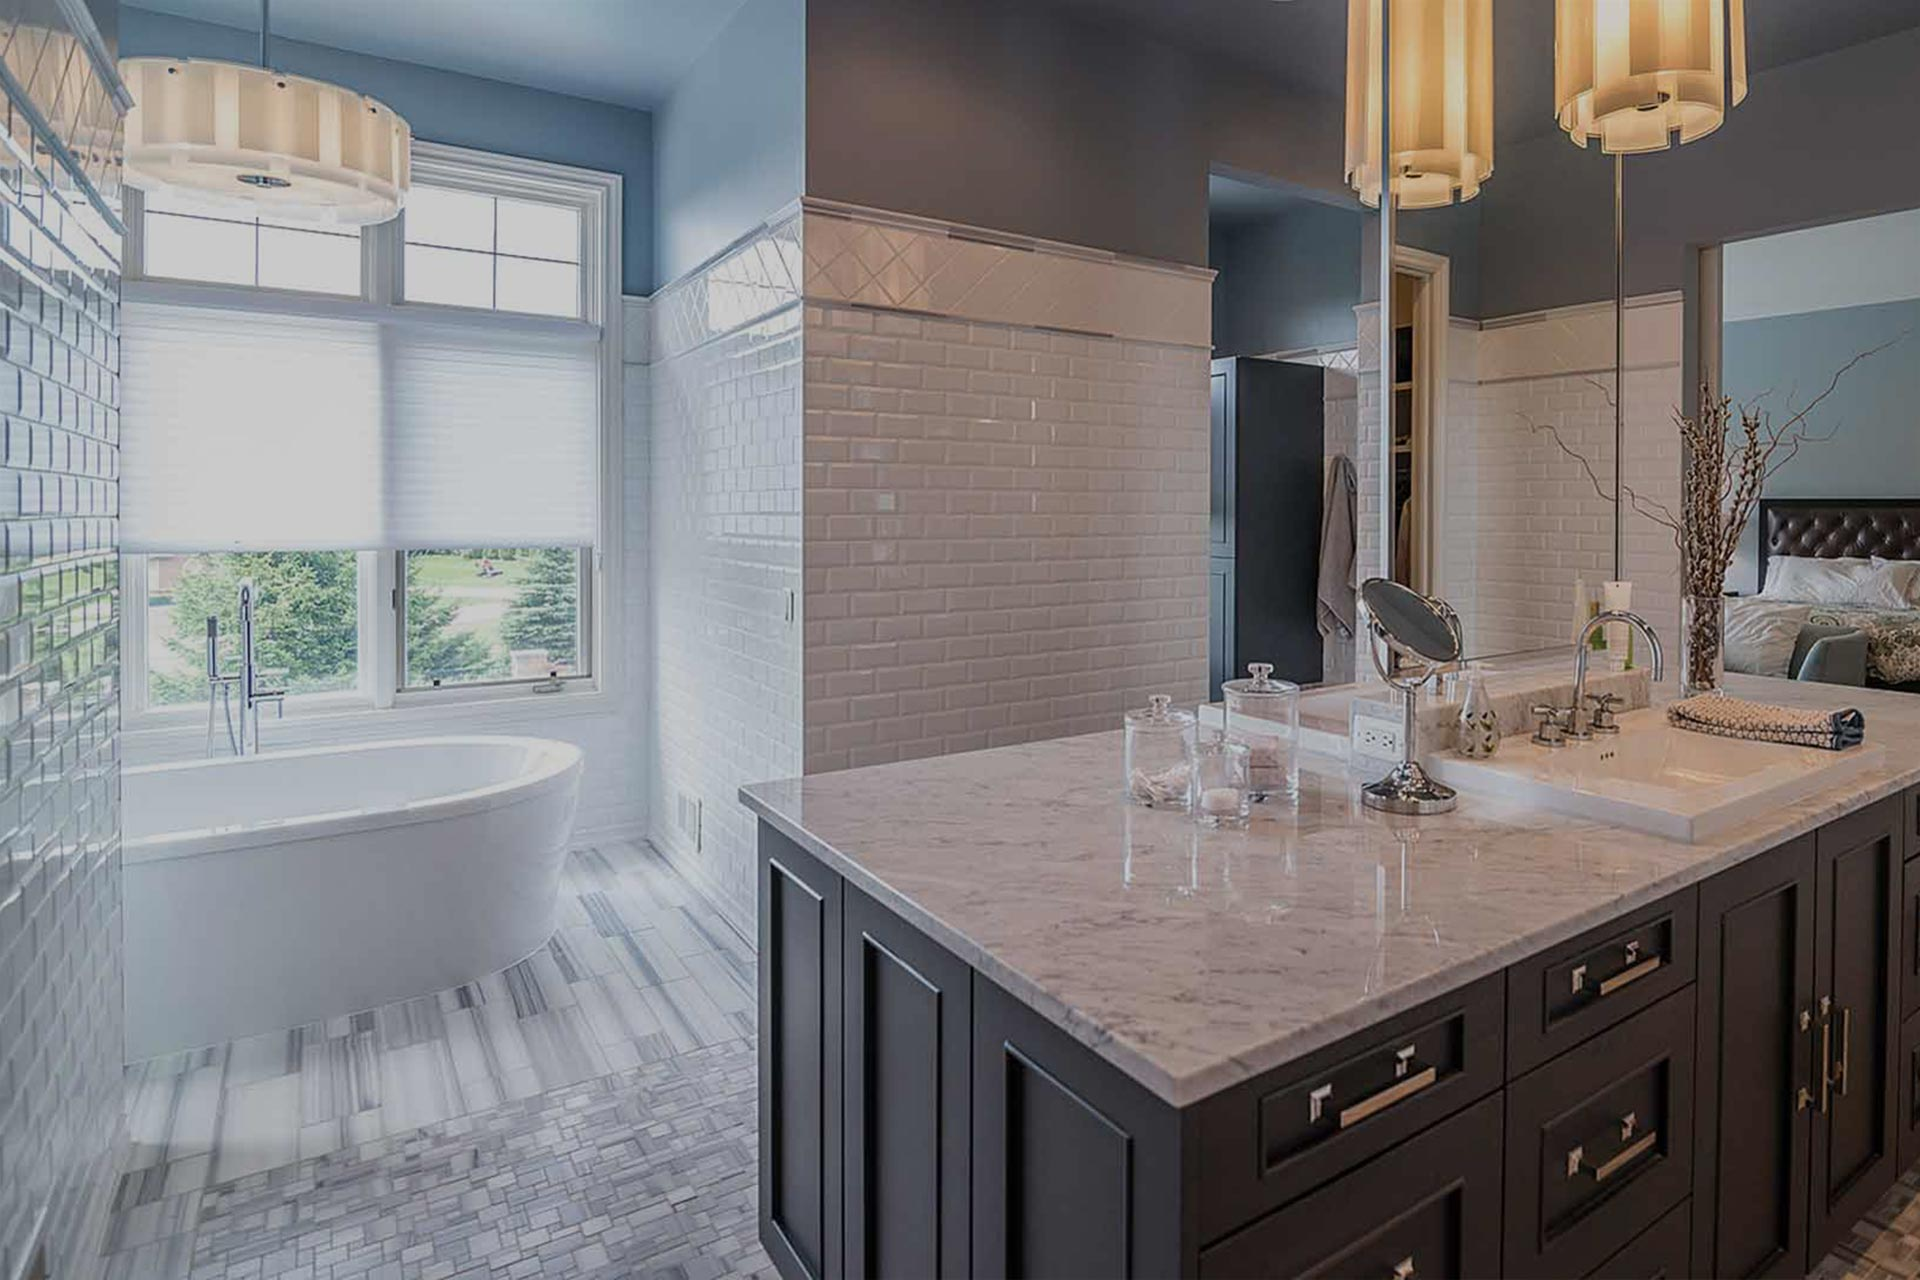 Bloomfield Township Design Services